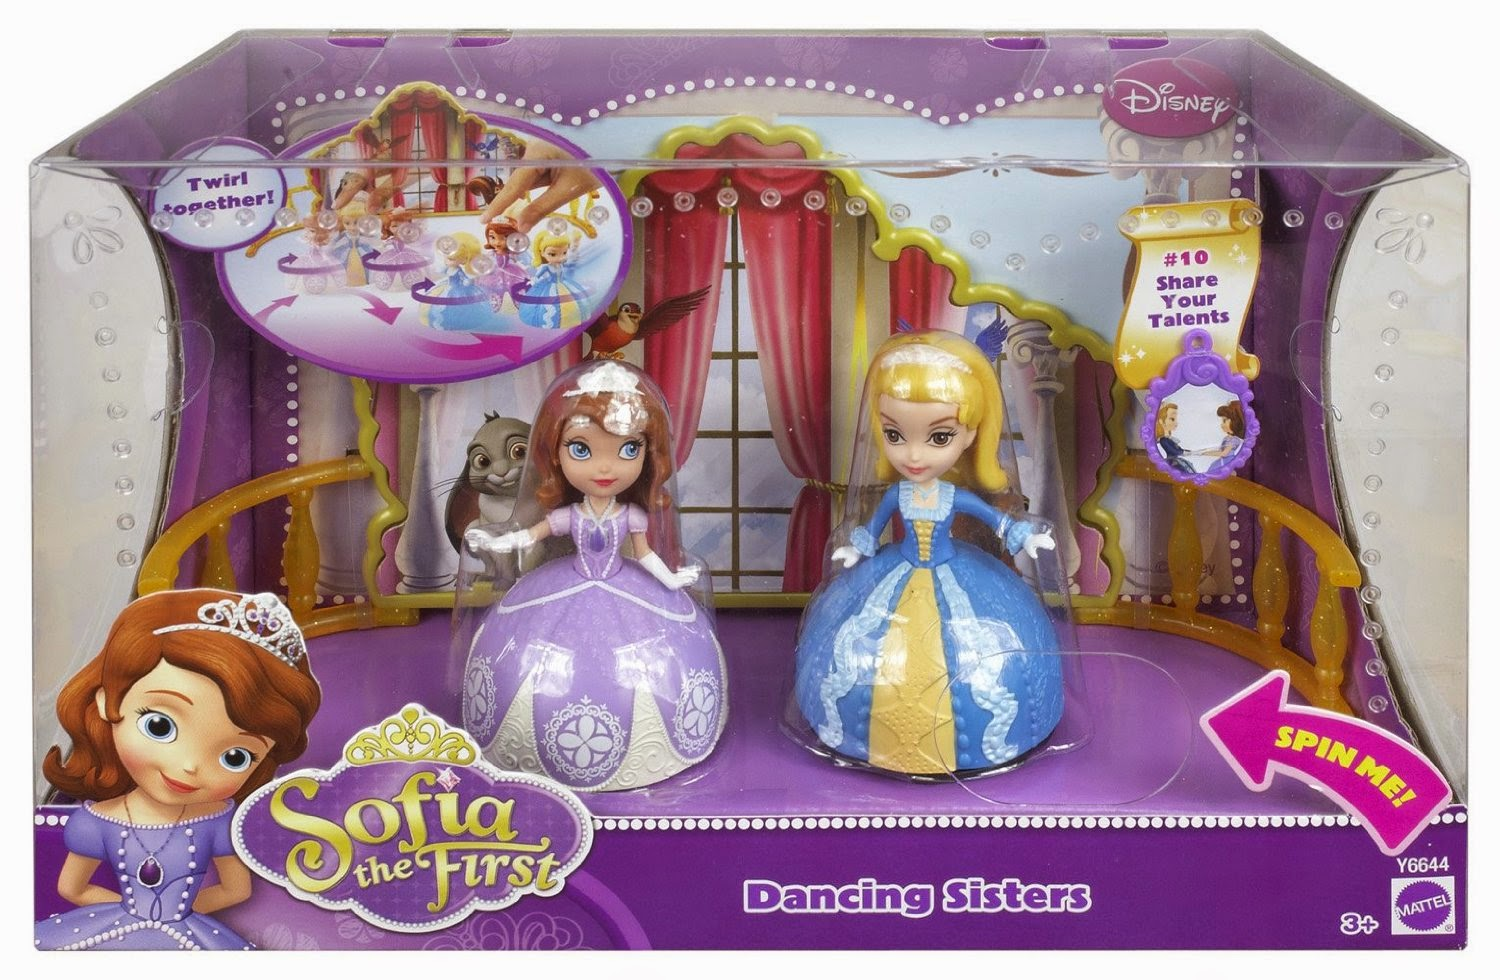 4littleboyz online toy shop clothings sofia the first disney sofia the first dancing sisters 2 pack price 18 sgd amipublicfo Images